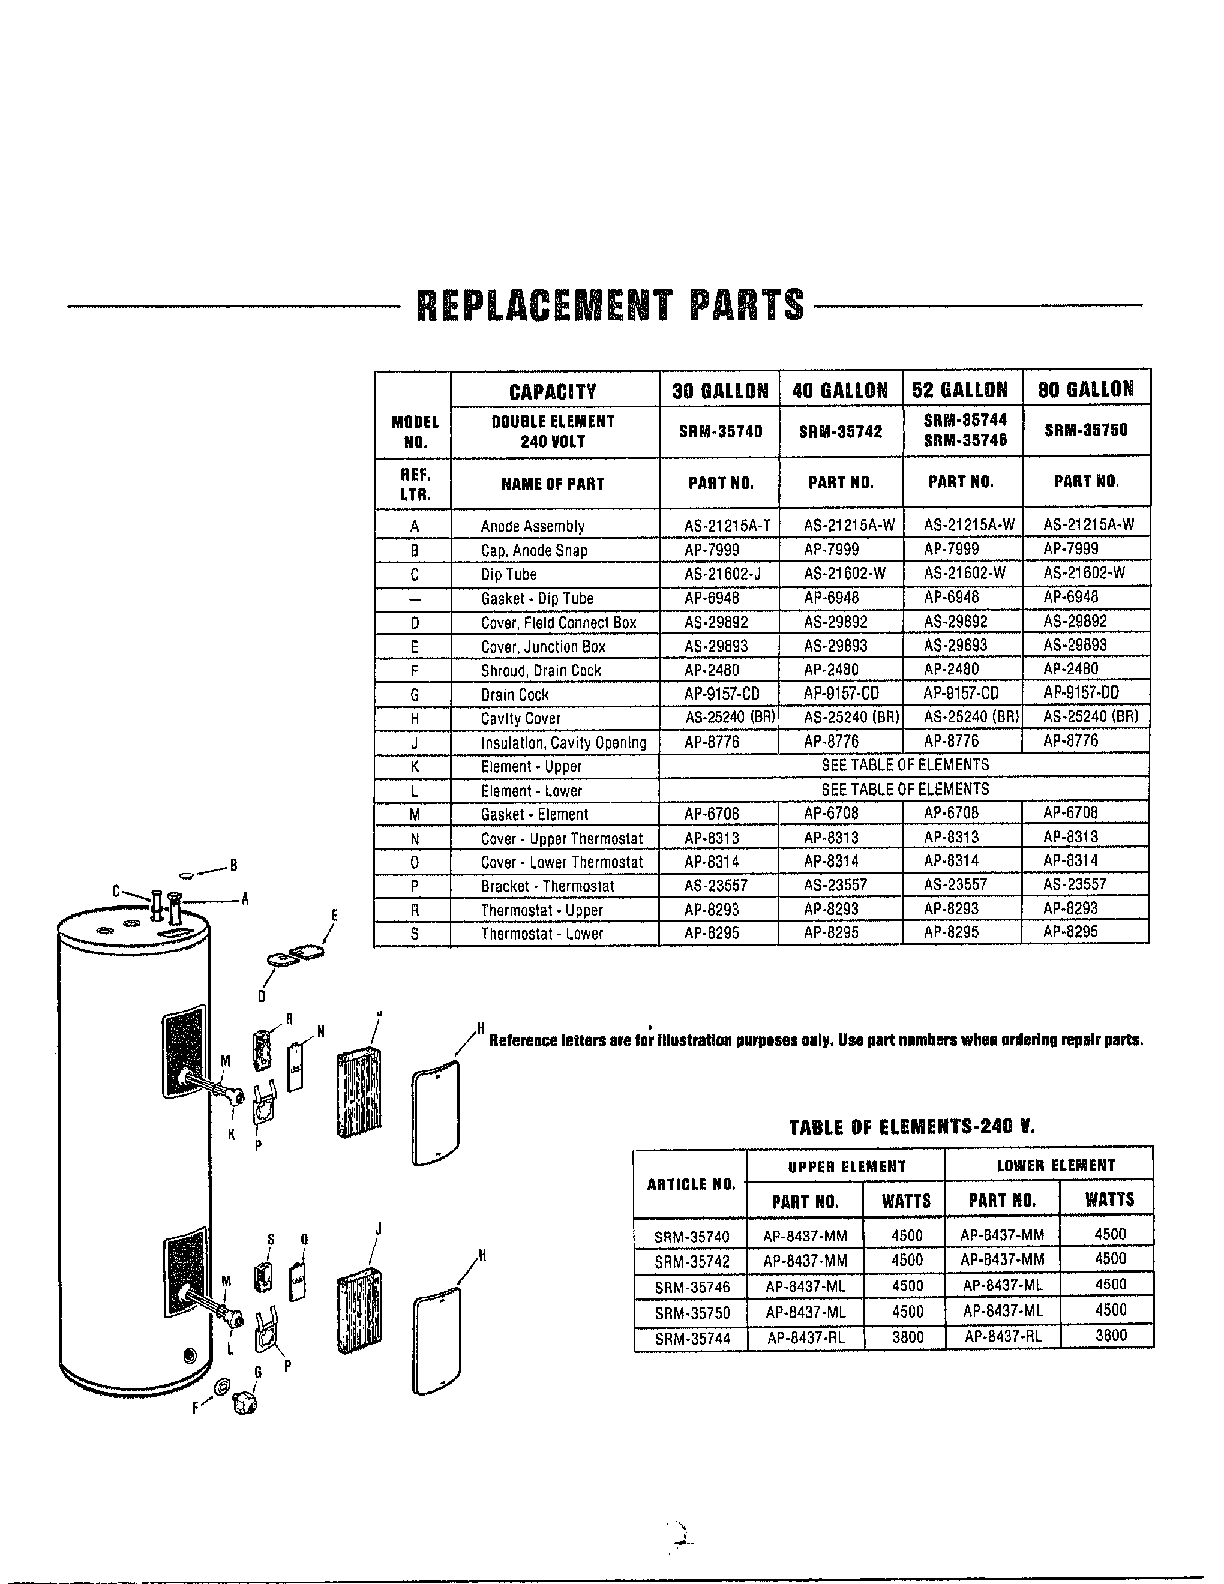 Wiring Diagram For Rheem Hot Water Heater from c.searspartsdirect.com